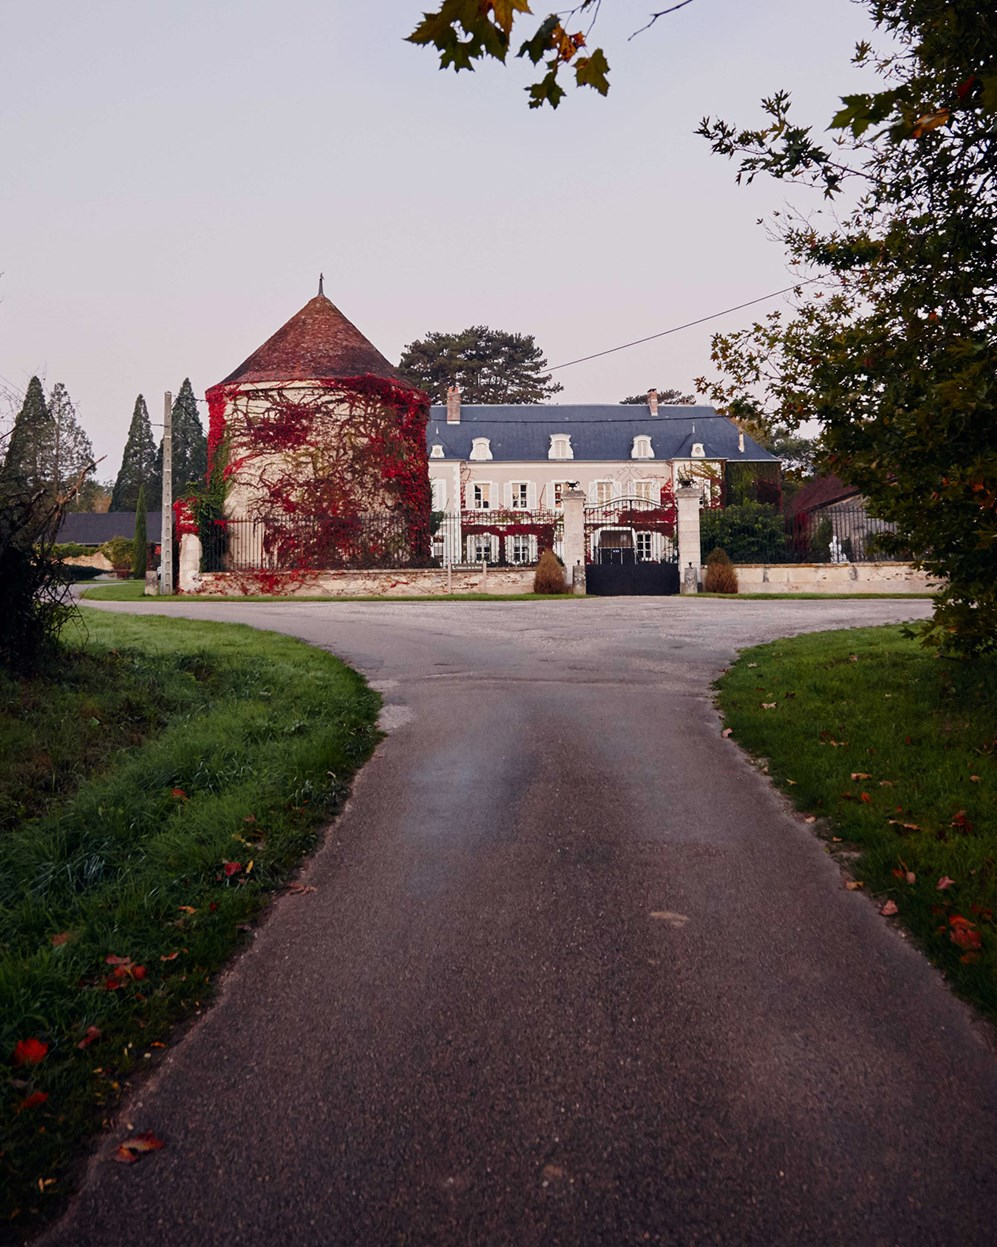 Chateau De La Resle Burgundy France Homepage Teaser NEW 3